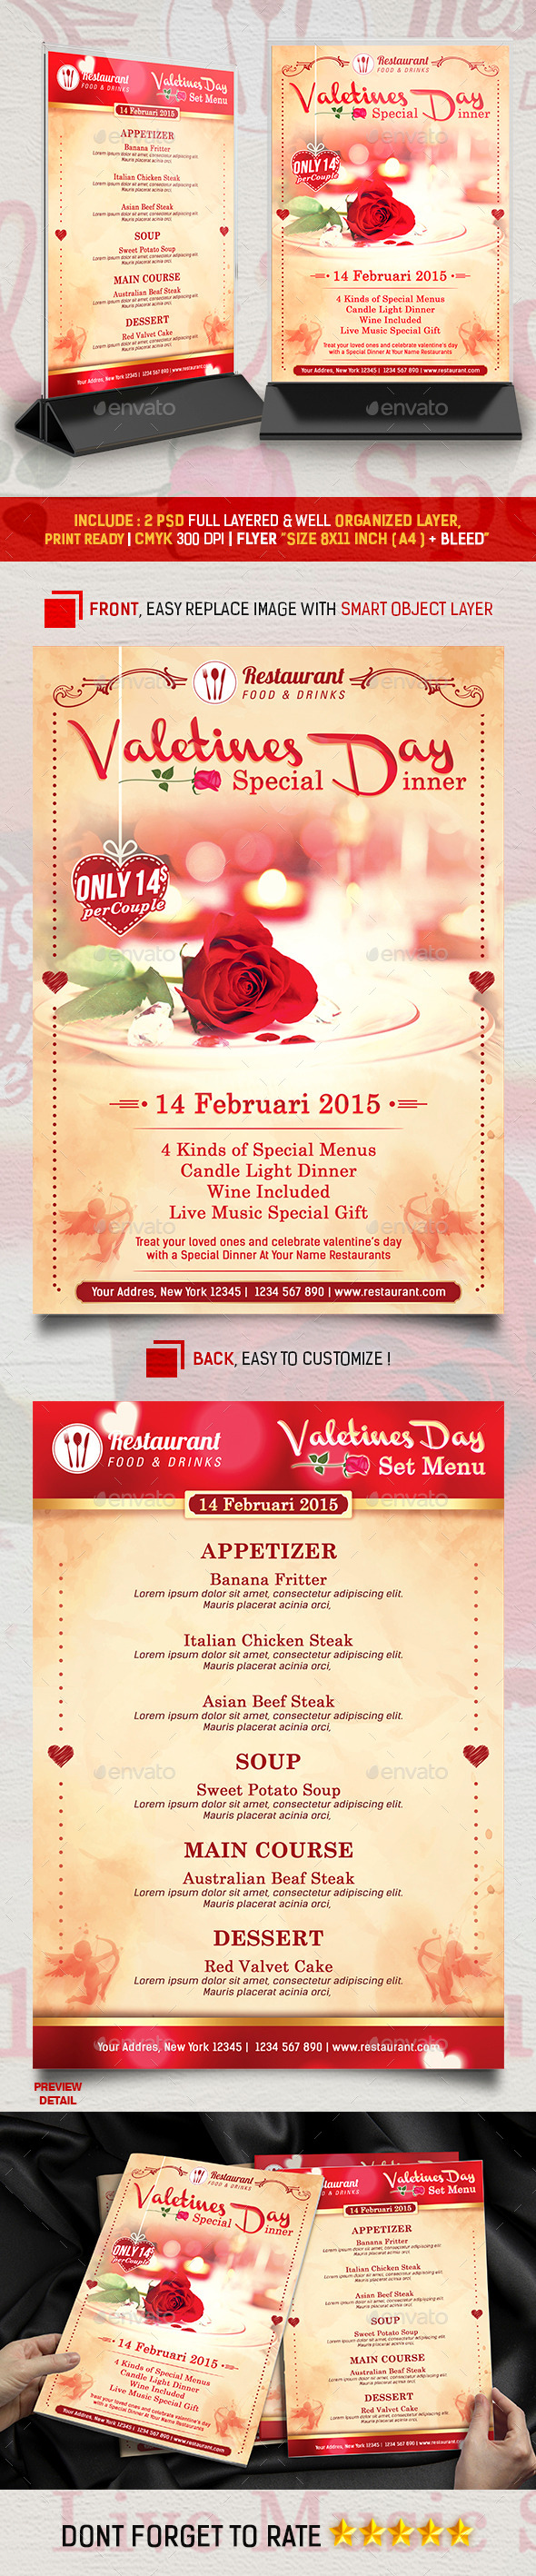 GraphicRiver Valentines Menu Special Dinner Promotion 10156520